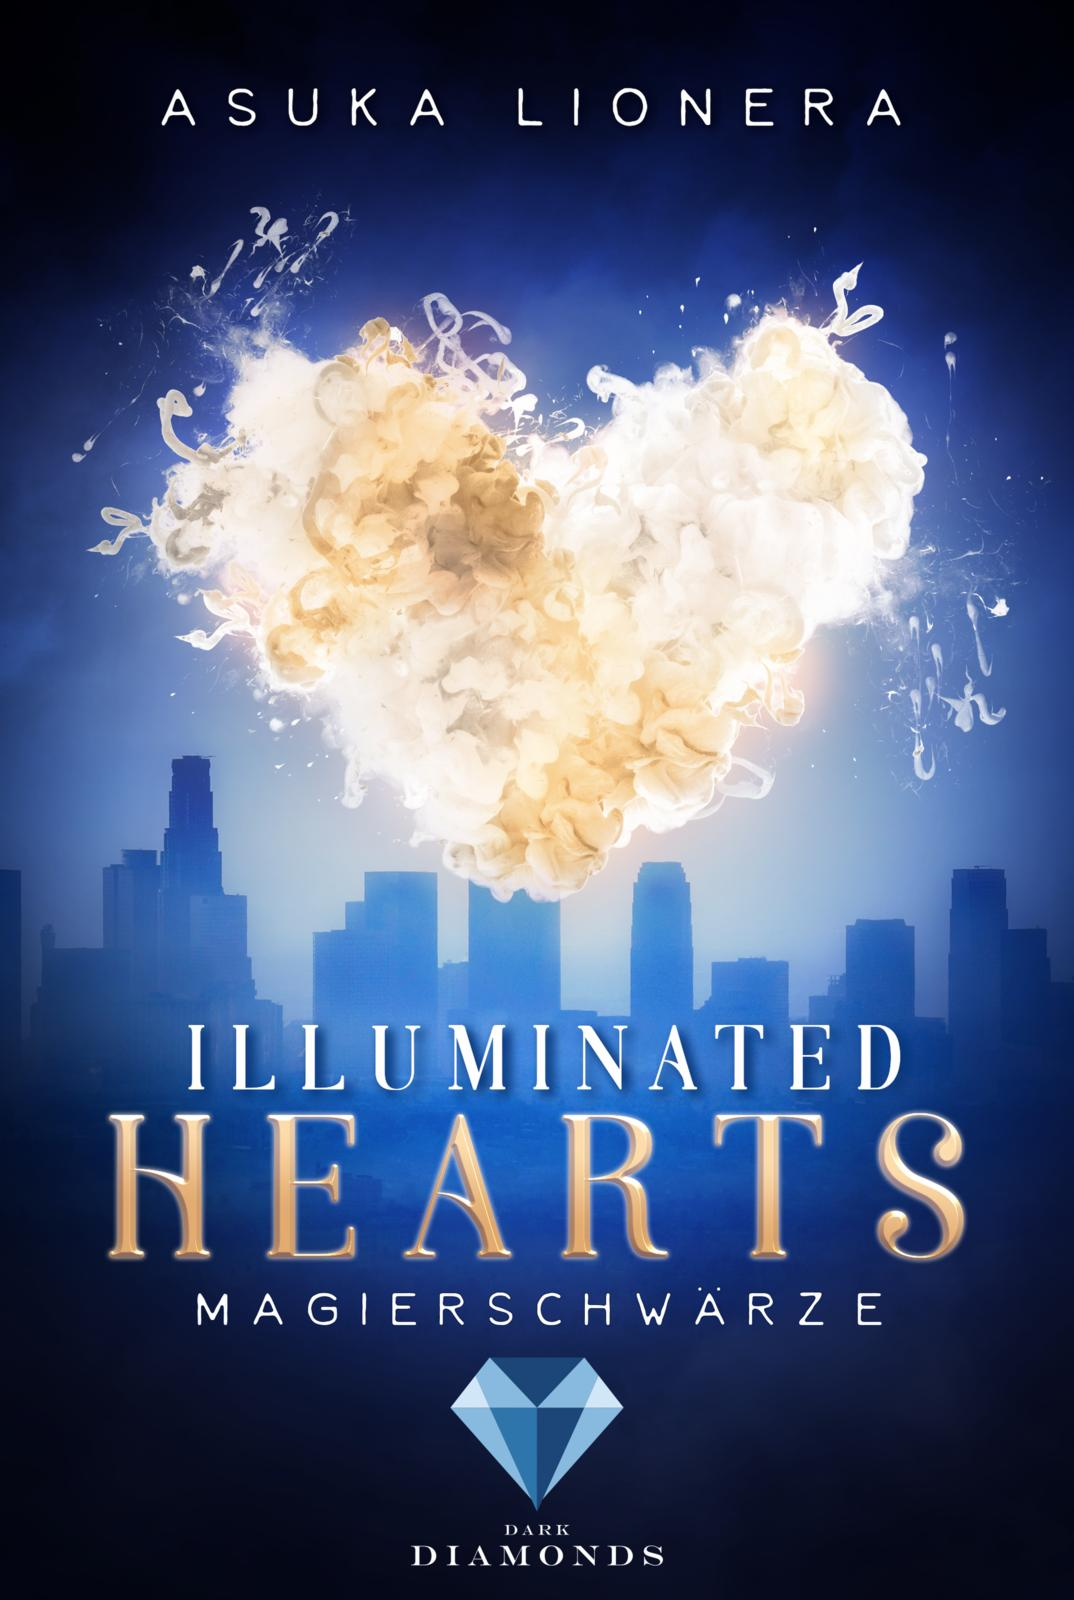 Illuminated Hearts.Magierschwärze